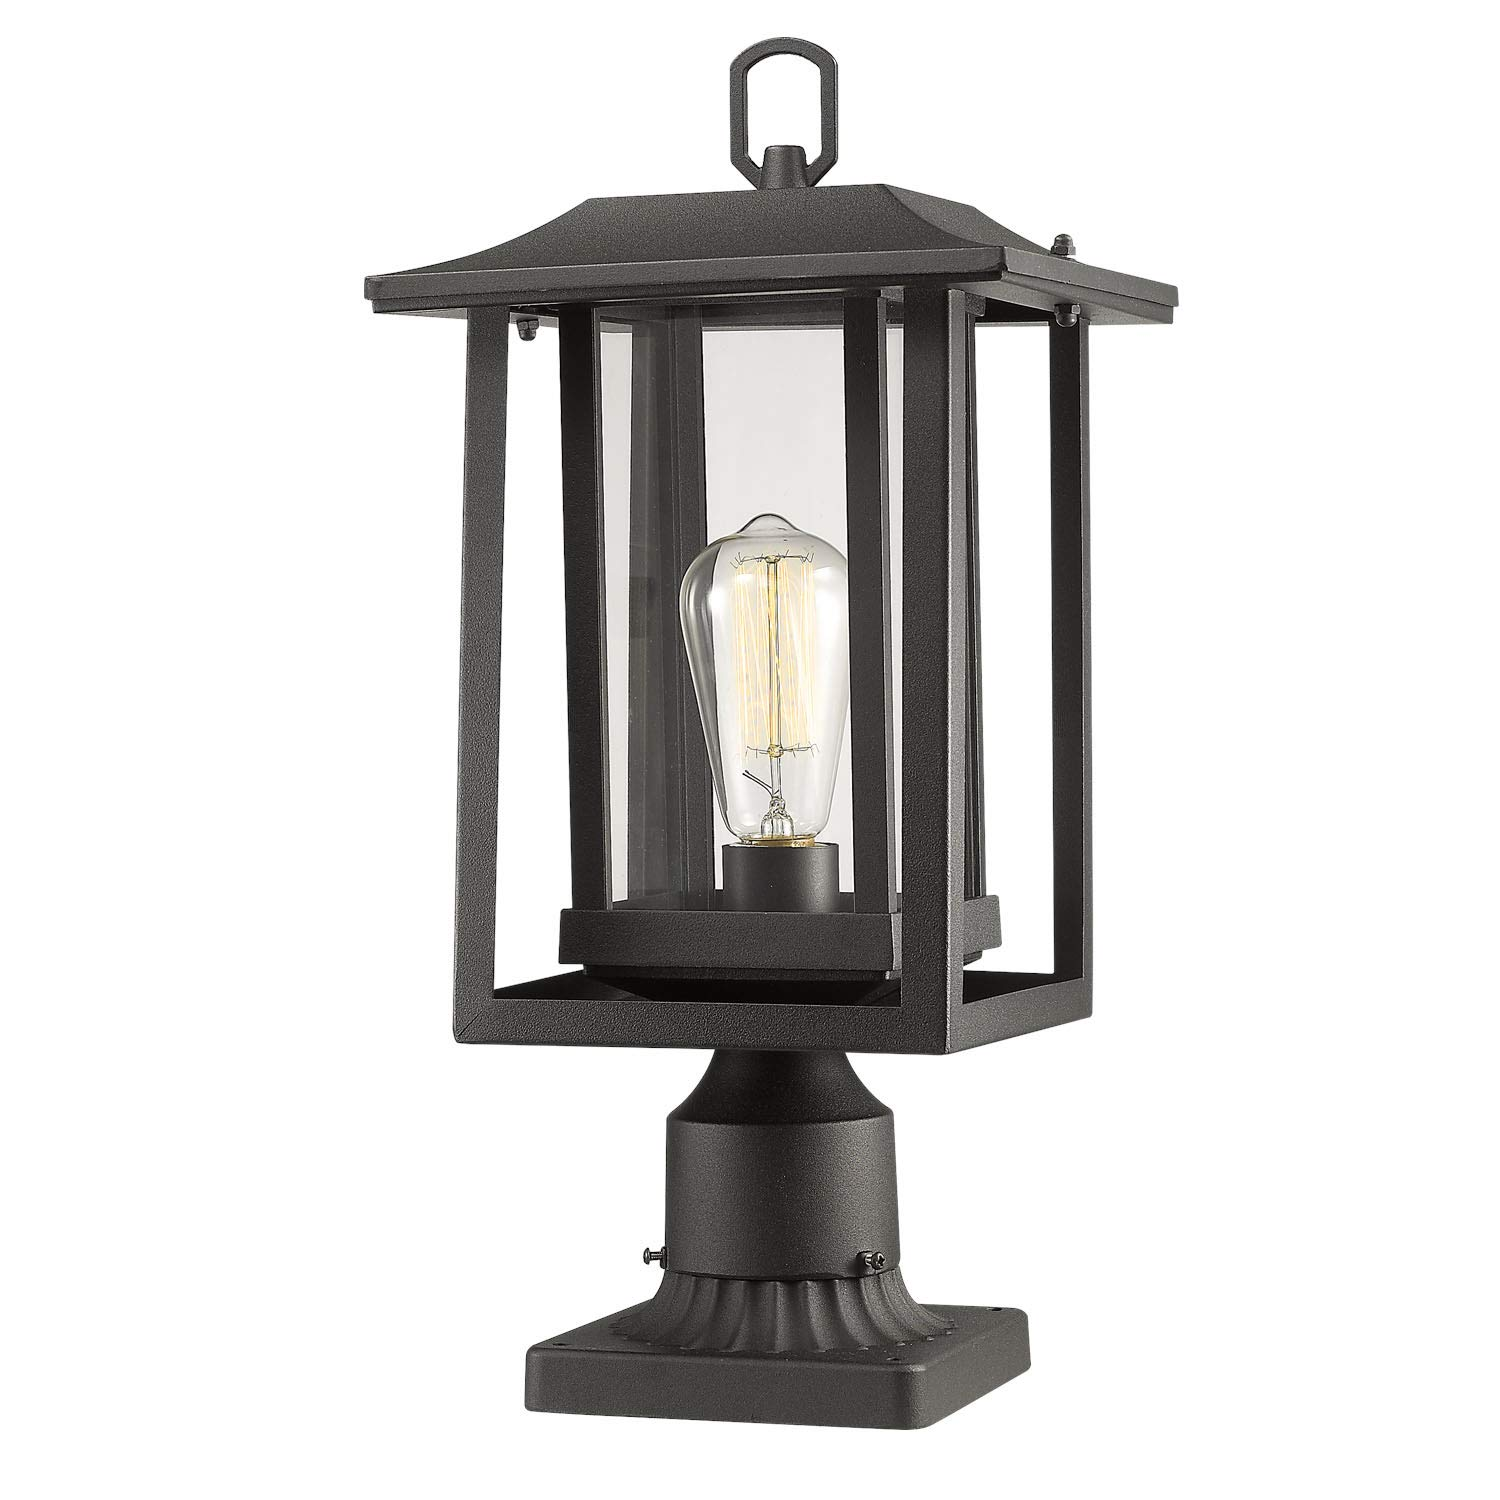 the latest 1f623 7c7b1 Beionxii Modern Outdoor Post Lights, Exterior Post Lighting Fixture with  3-Inch Pier Mount Adapter, Black Finish with Clear Glass (8.9